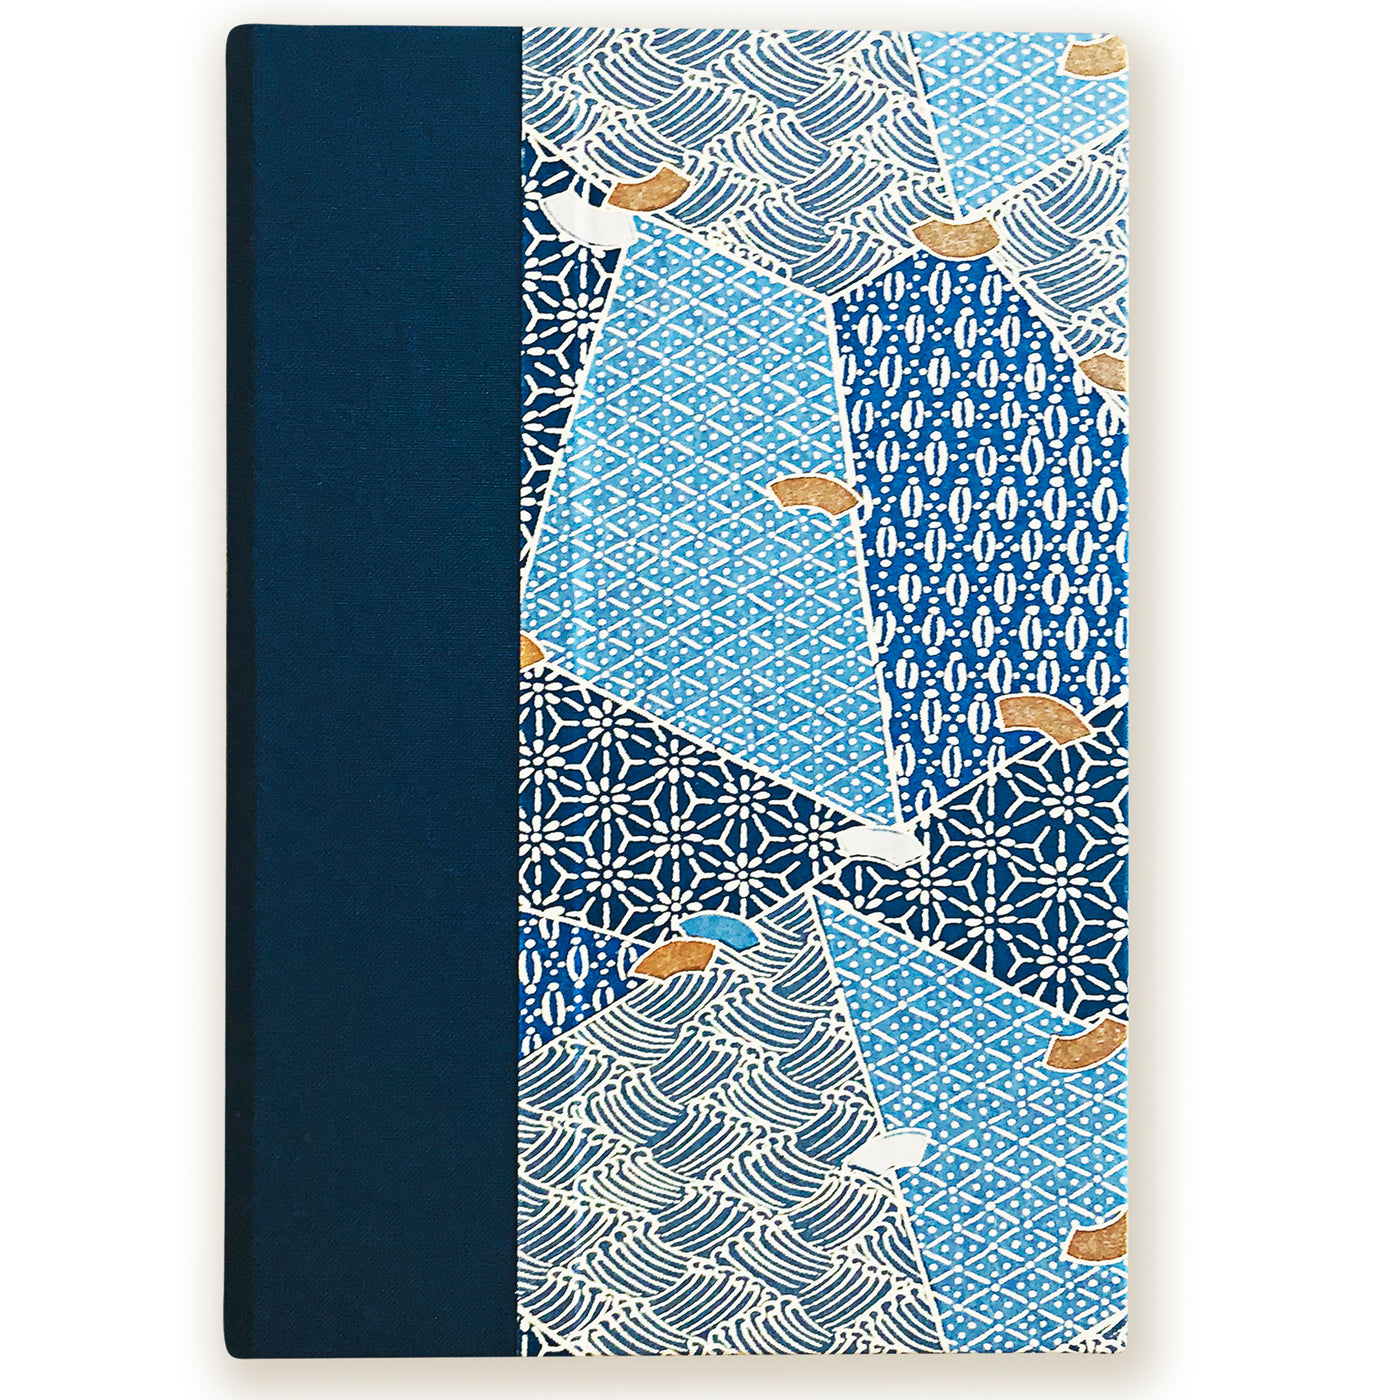 Origami Paper Mix Colors Of Blue Washi - 150 mm - 30 sheets | 1400x1400